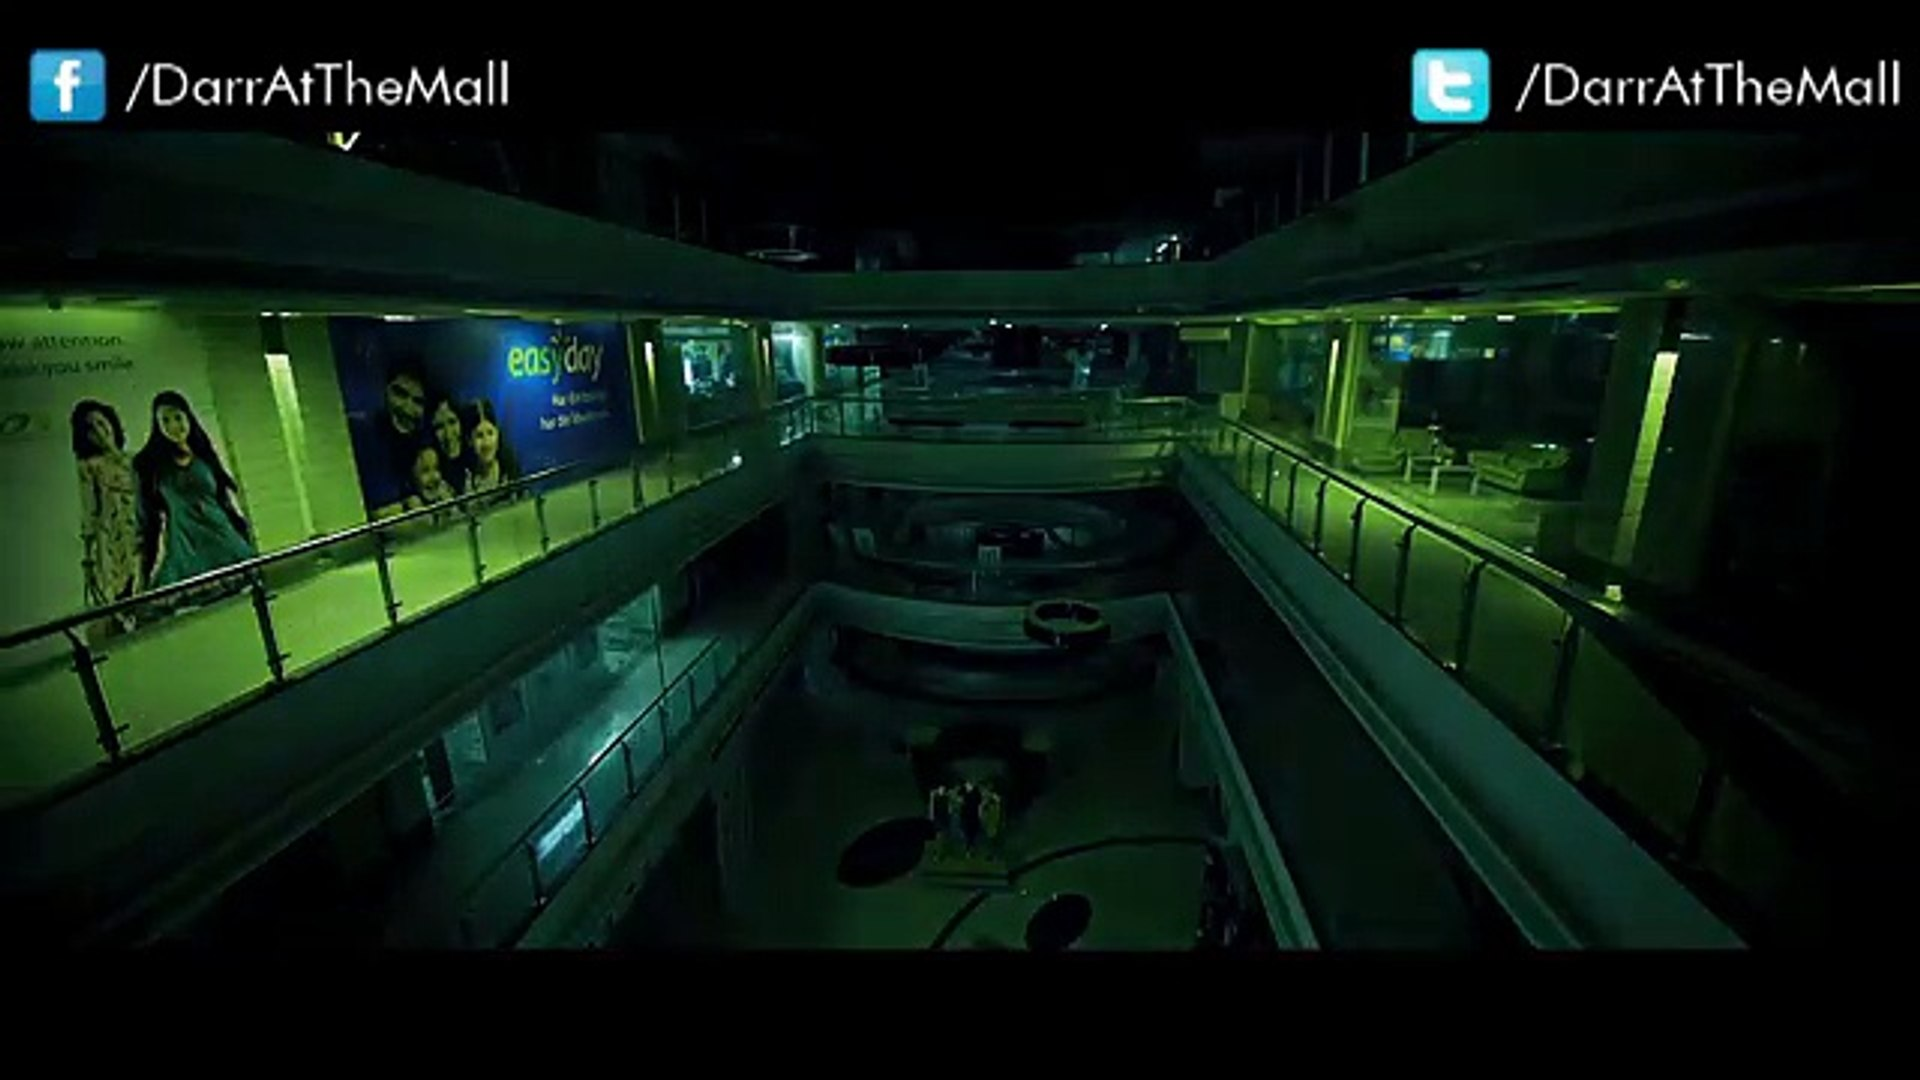 download darr at the mall full movie